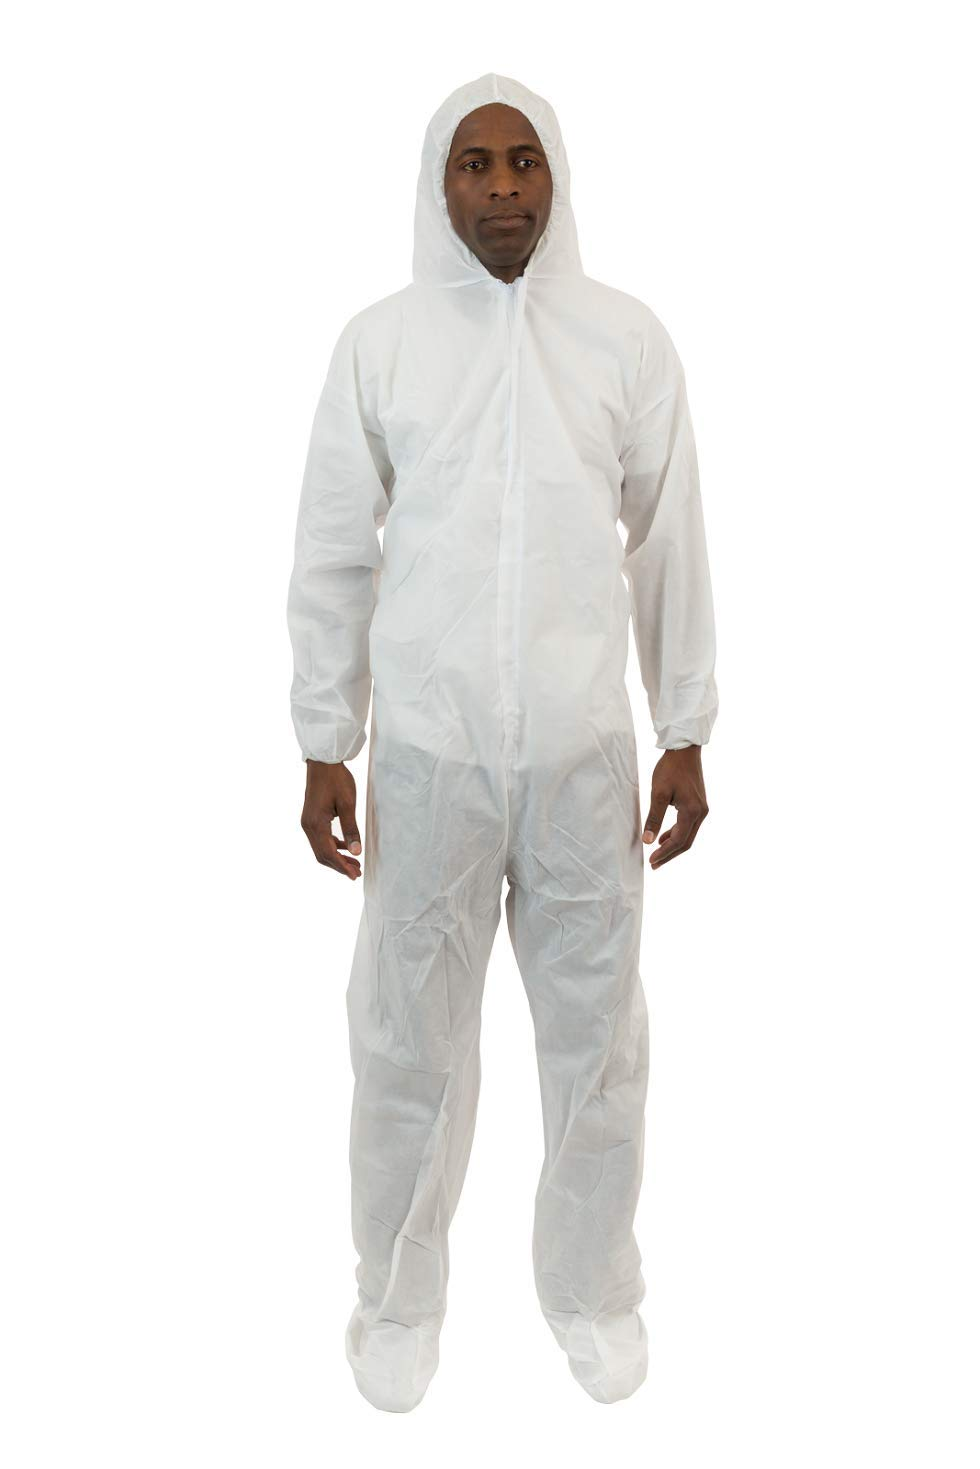 International Enviroguard - Standard Weight 3 Layer SMS General Protective Coverall for General Cleanup (White) Attached Hood & Boot and Elastic Wrist, 3XL, (25 per case) by International Enviroguard